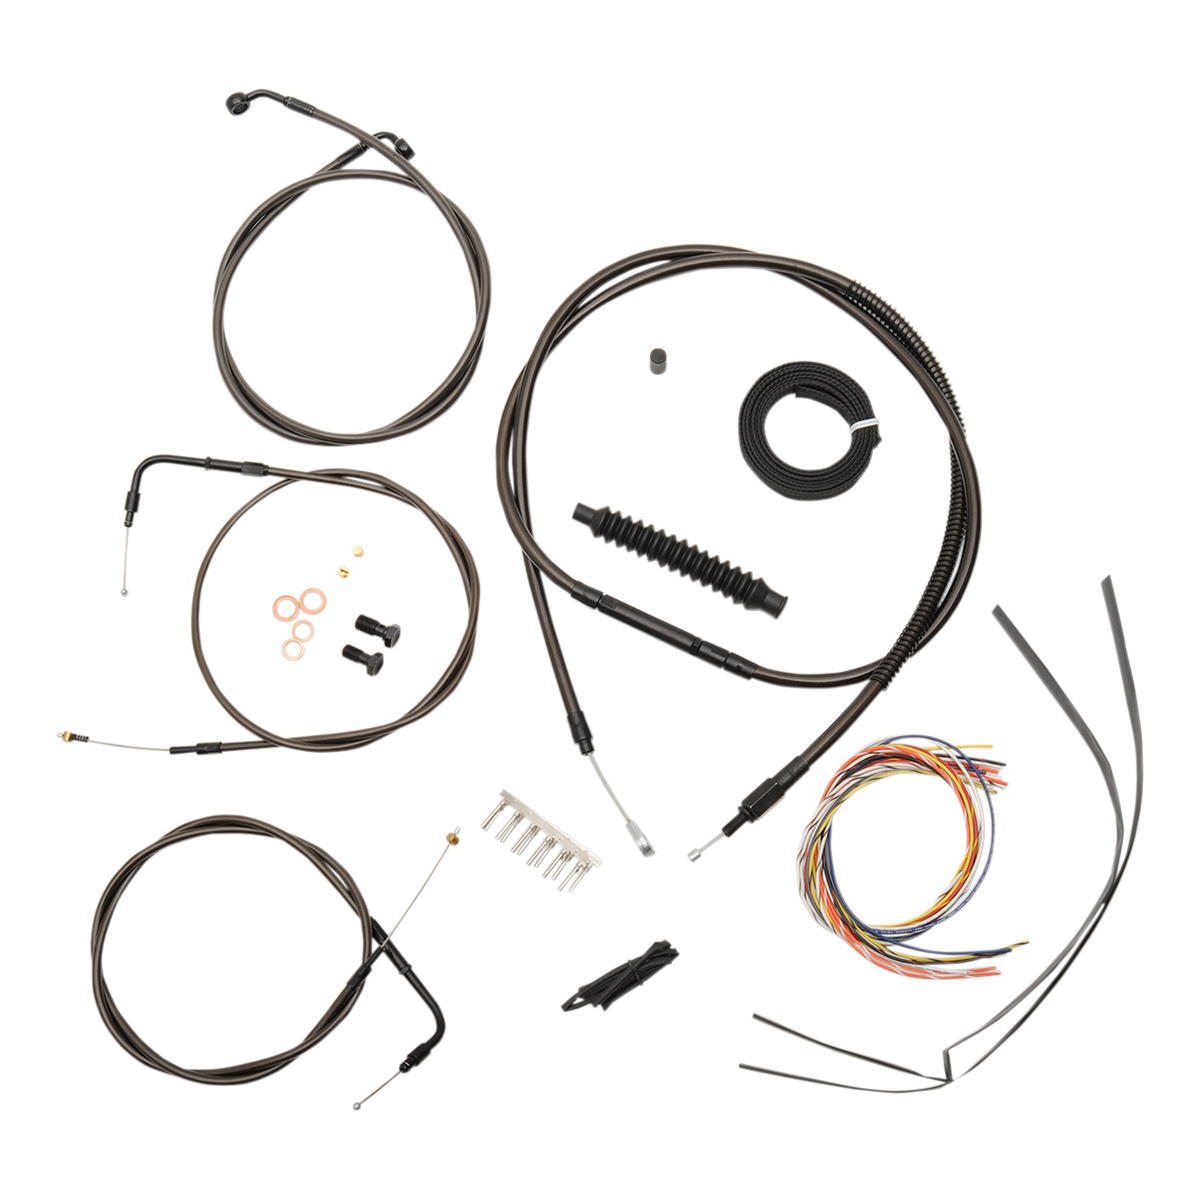 La Choppers Midnight Complete Cable Line Wiring Handlebar Kit For 12 14 Bars On Models Without